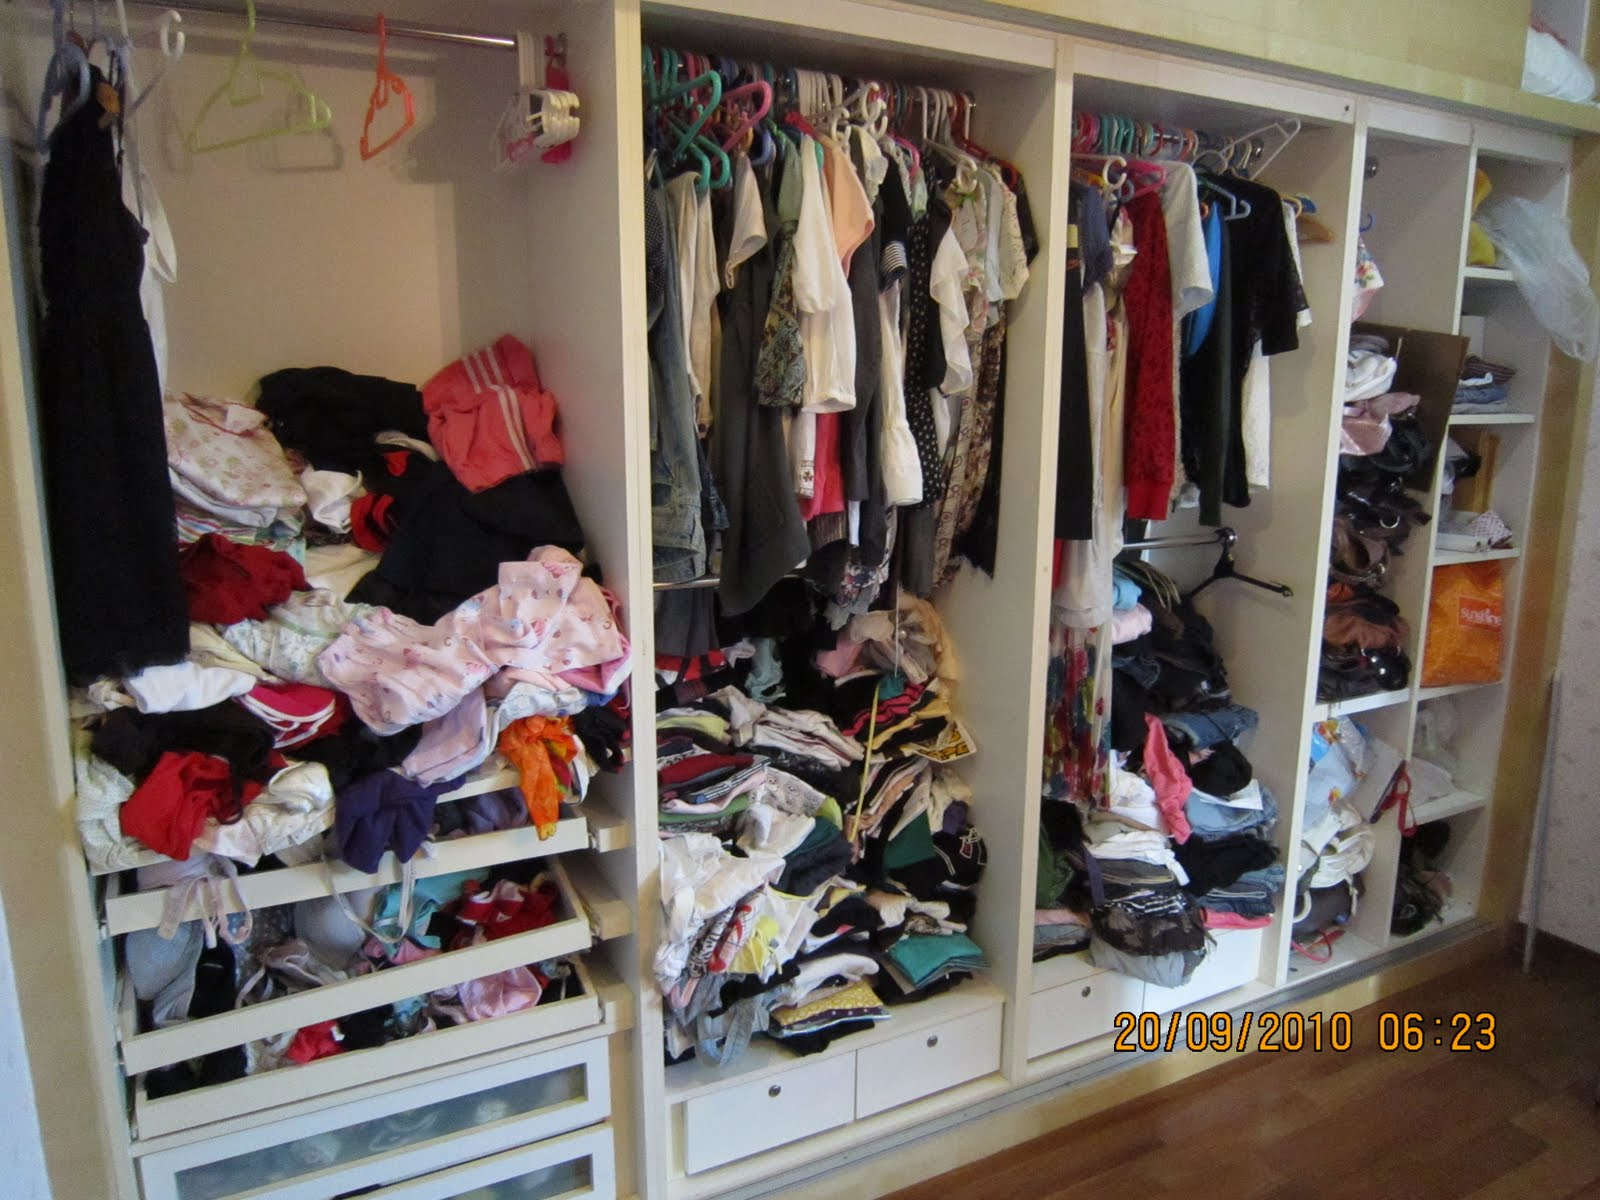 To Show That Fact Ive Decided You Some Examples Of Really Messy Wardrobes I Found On The Internet Lol